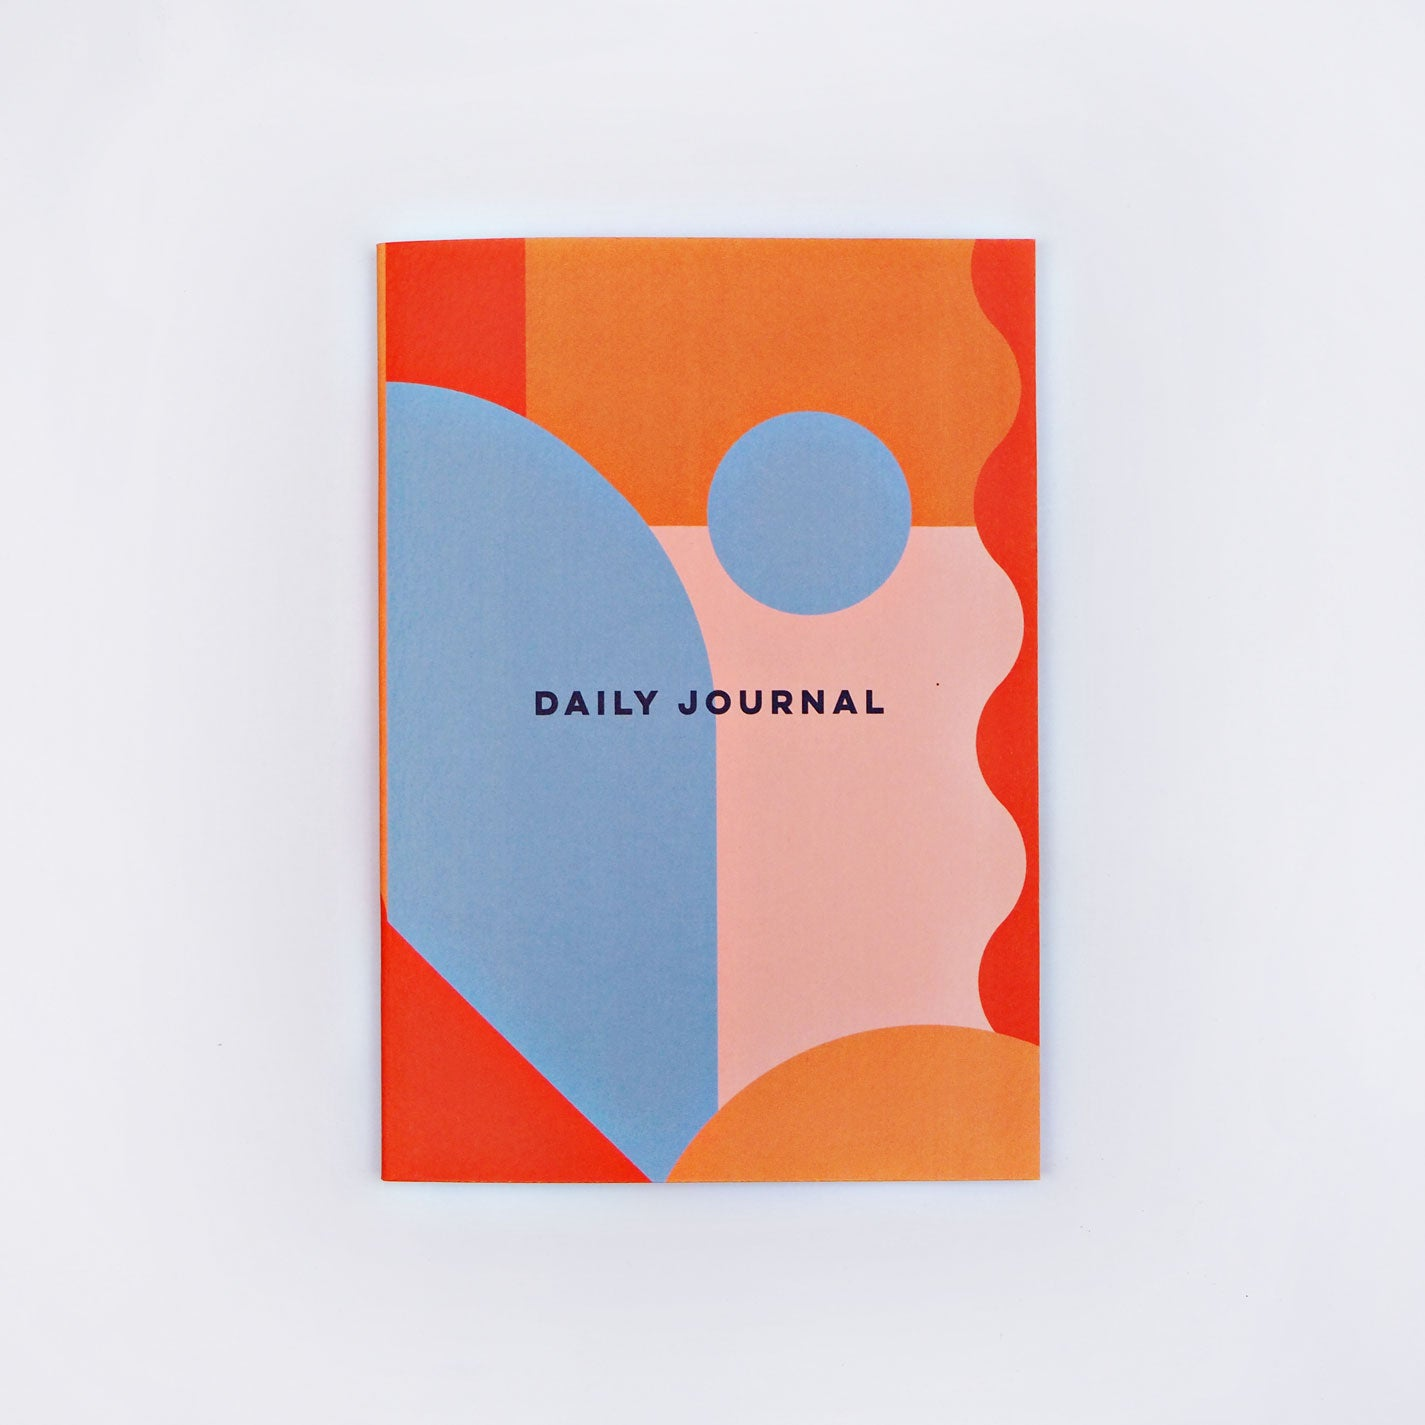 Daily Journal - Miami